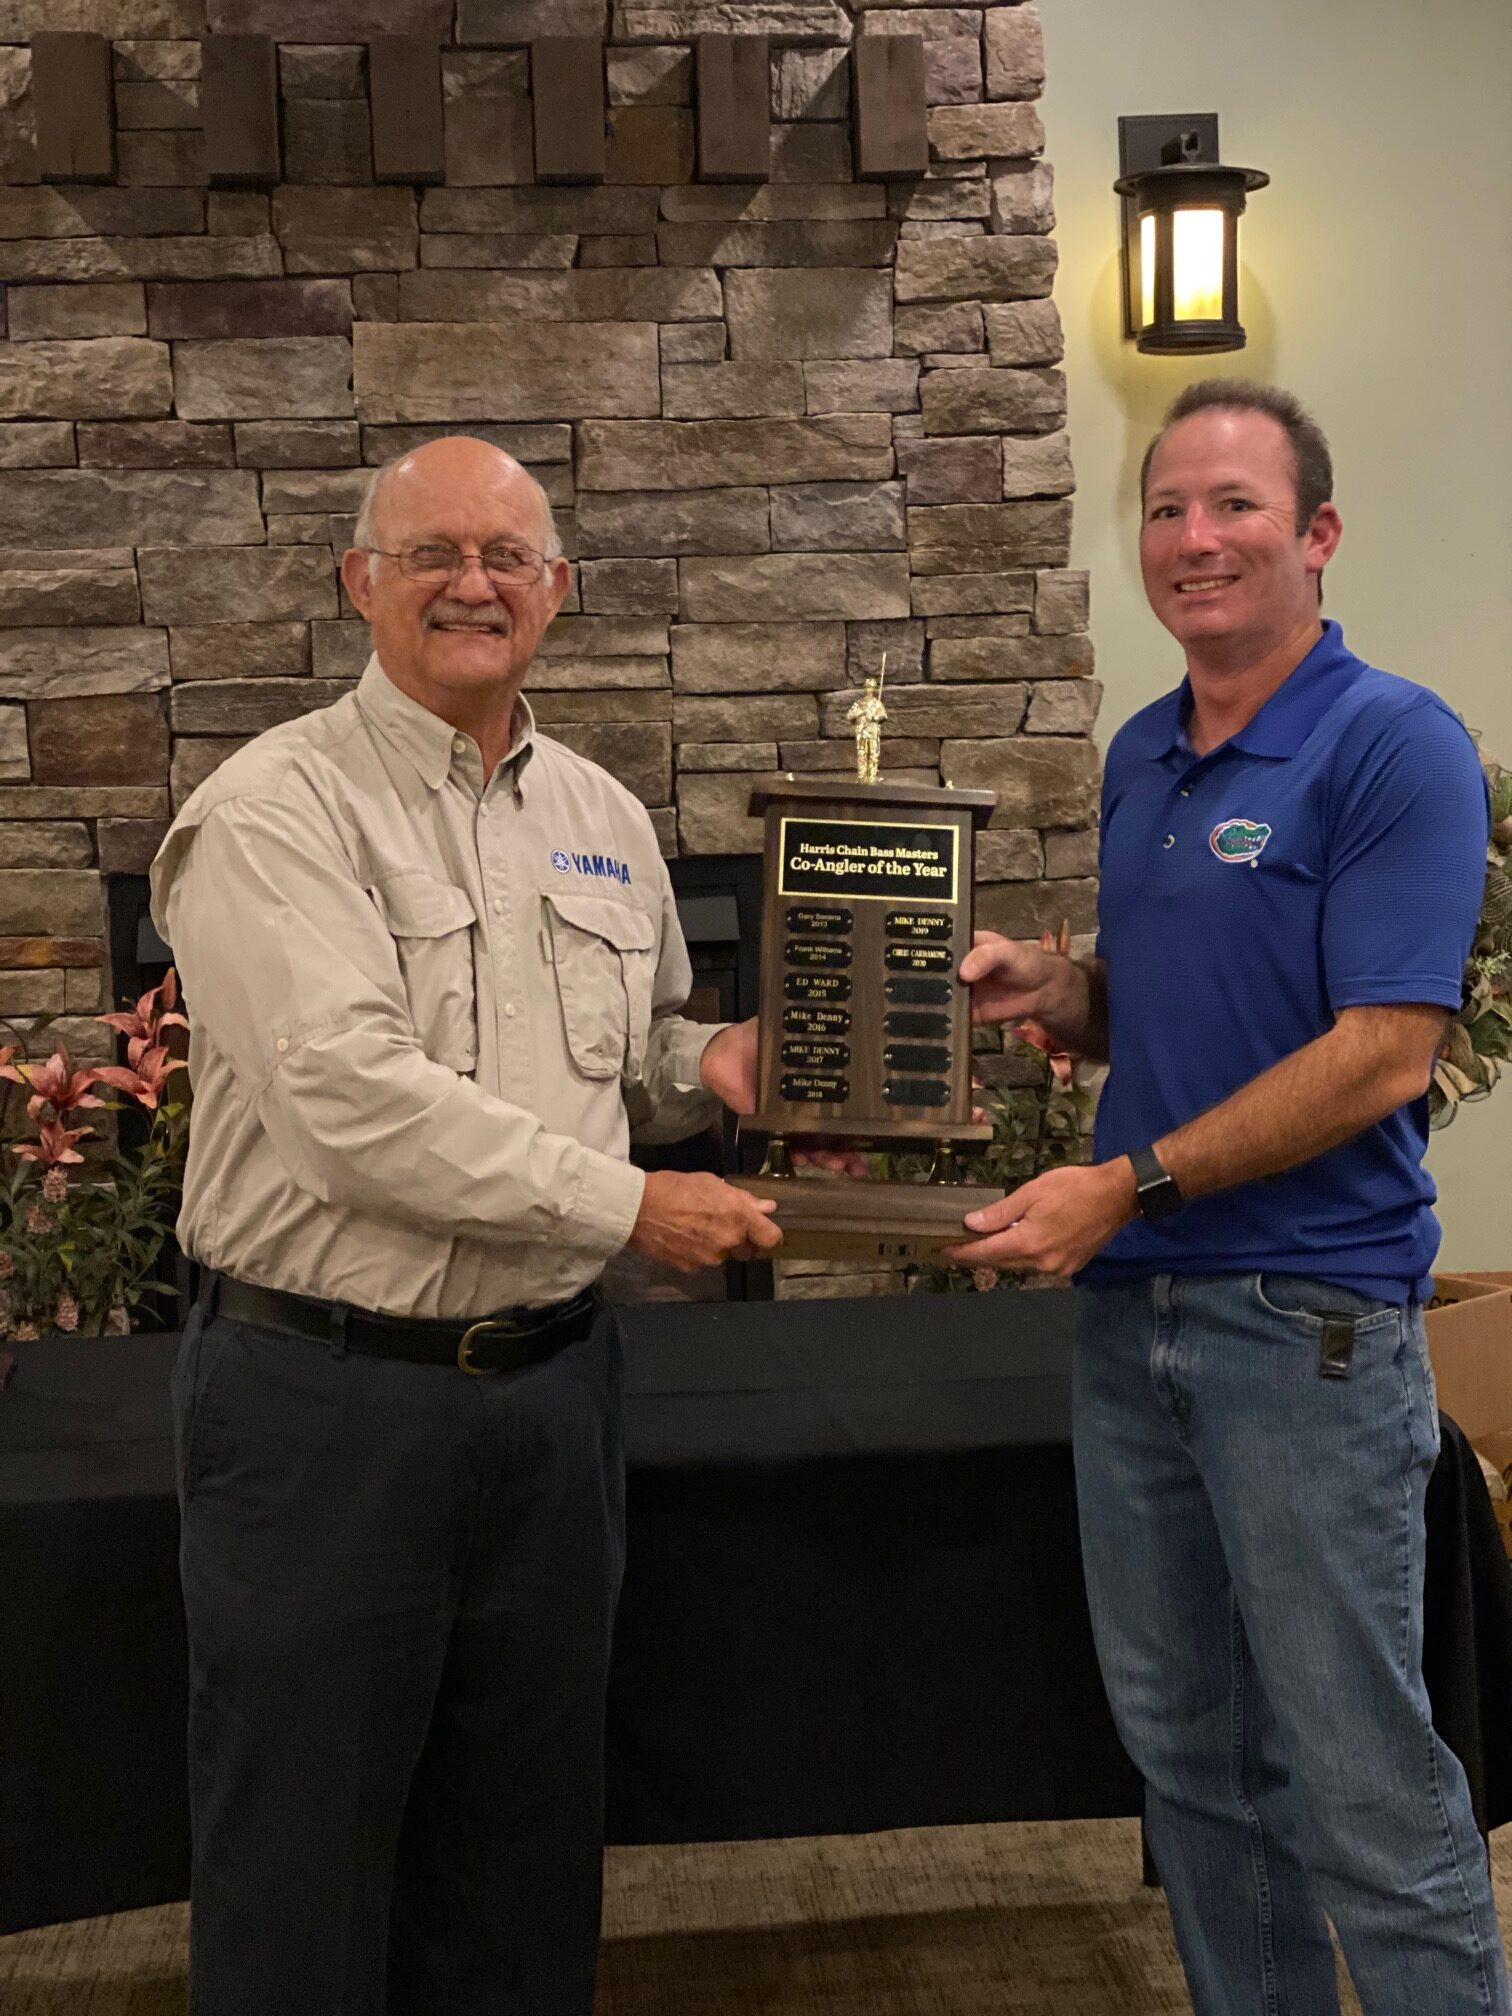 Chris Cardamone - 2020 Co-Angler of the Year